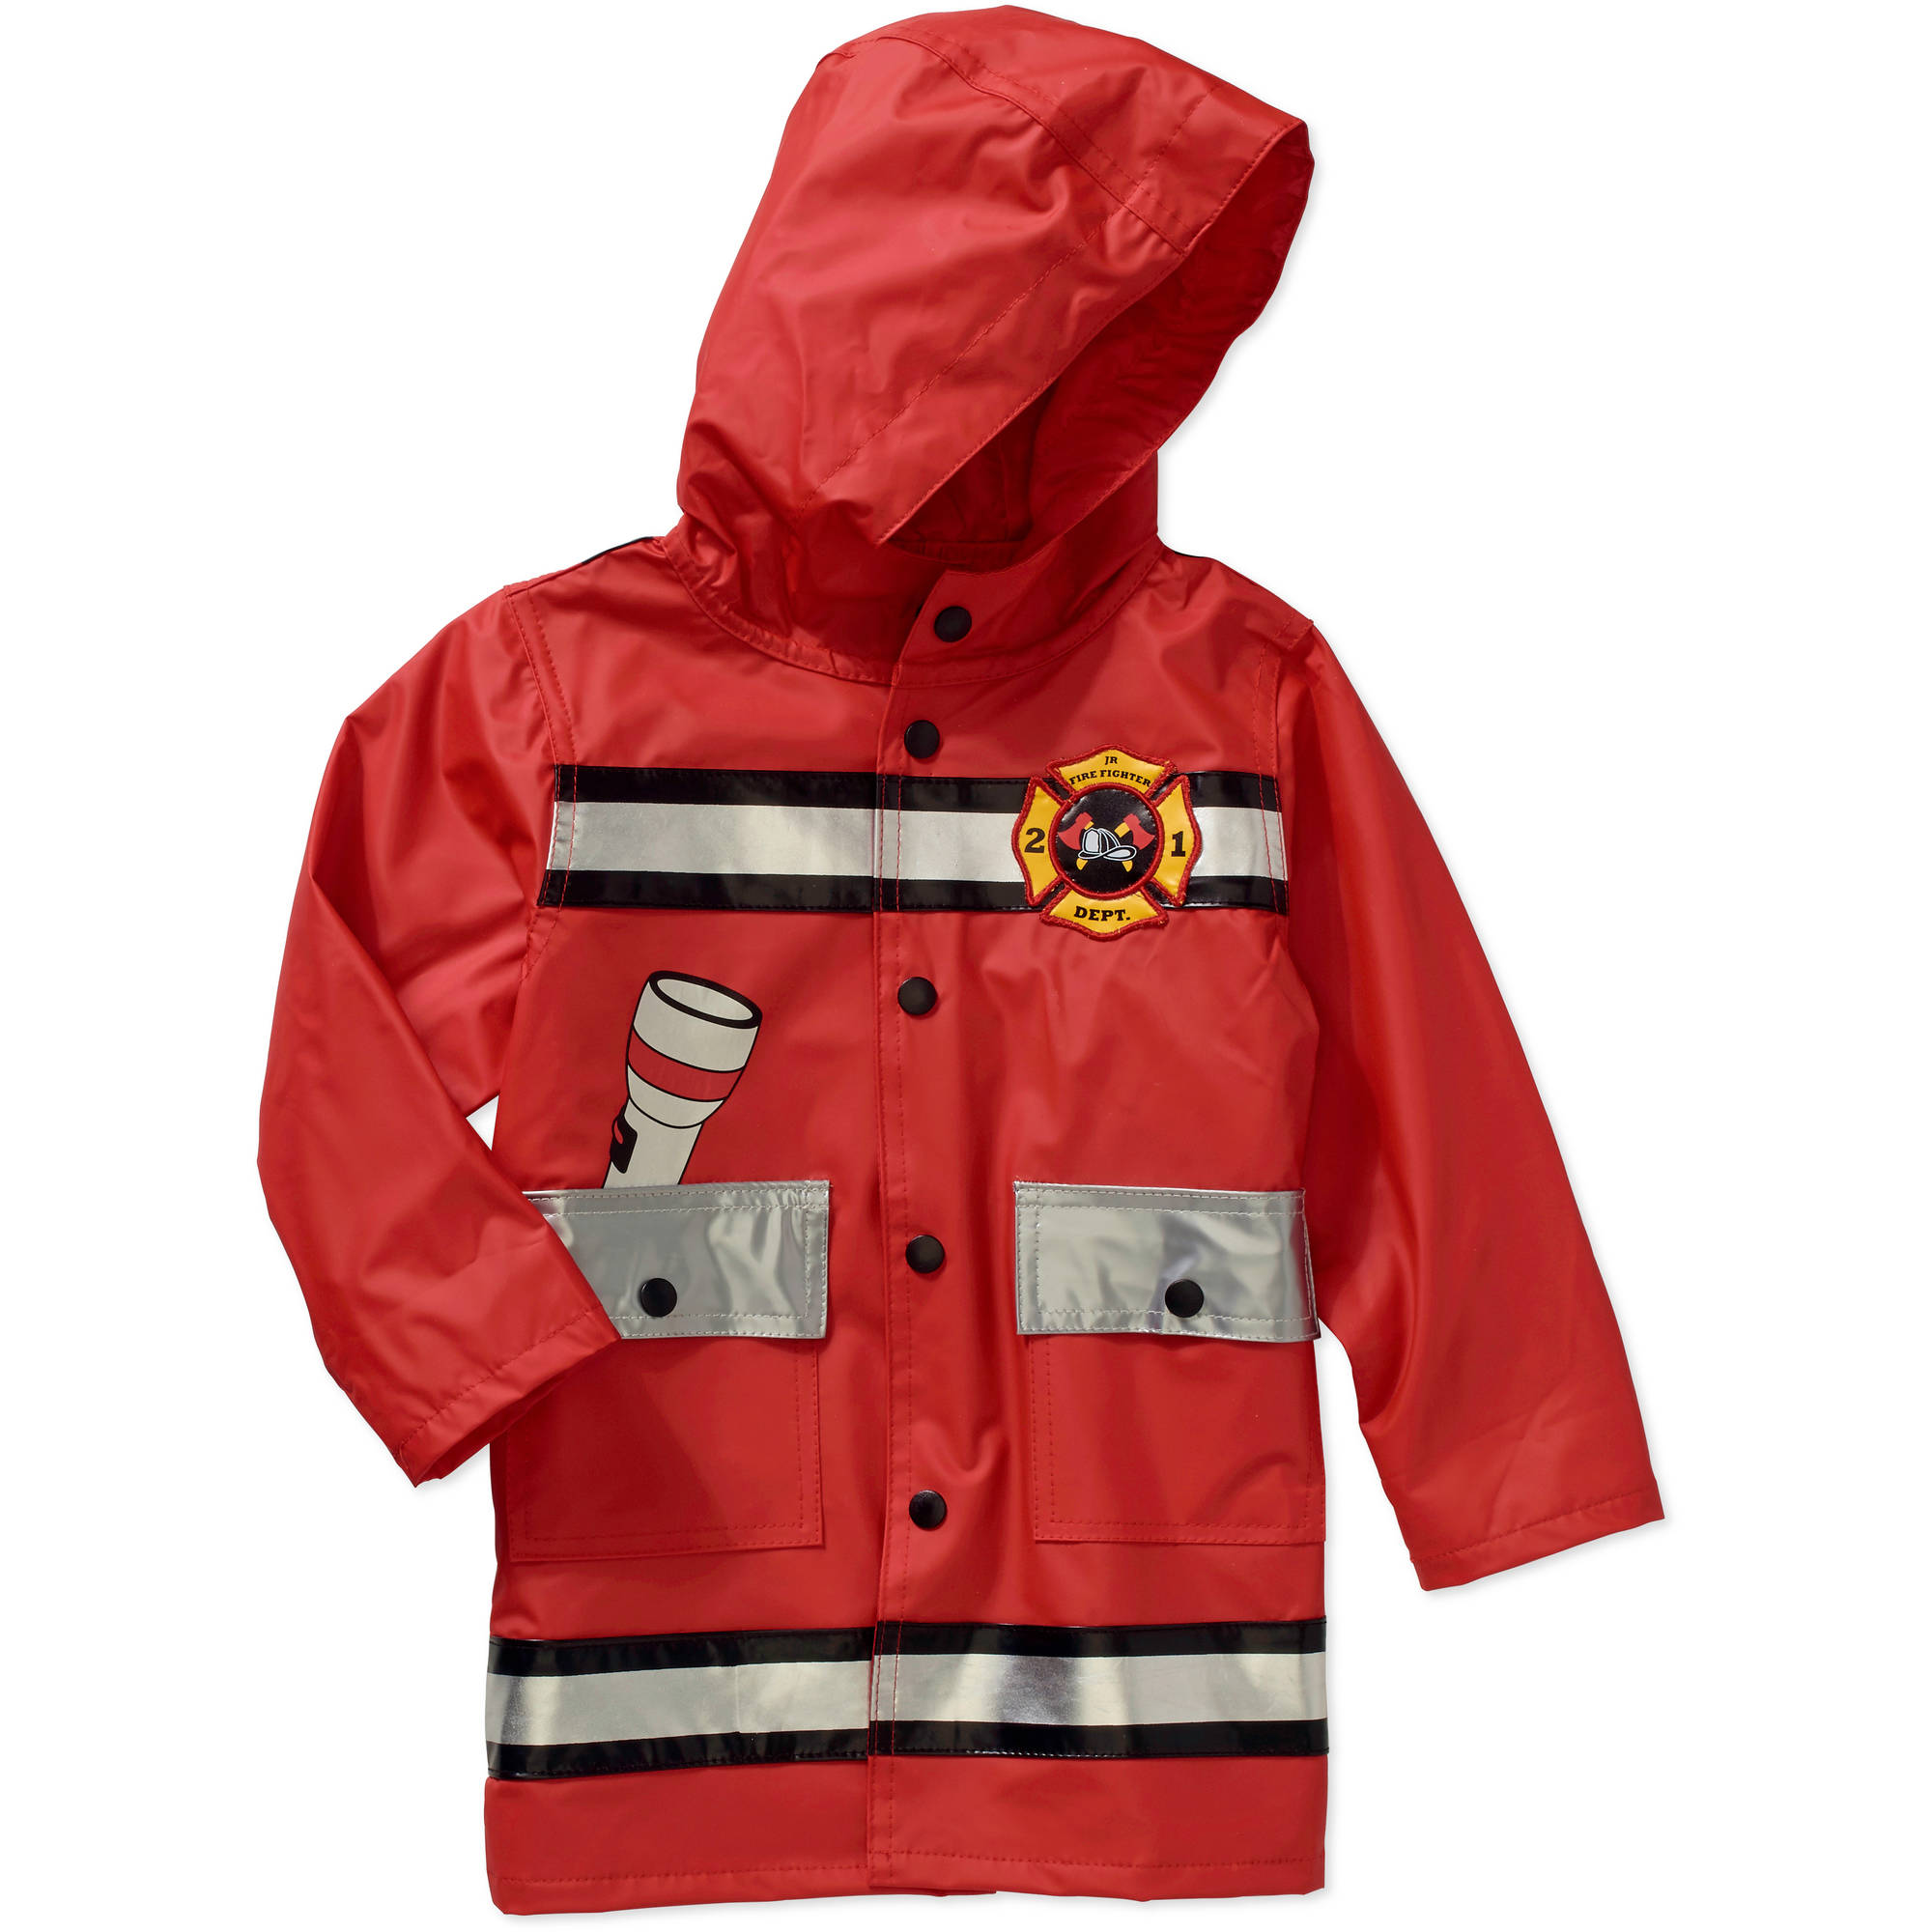 Raindrops Toddler Boy Fireman Rain Jacket